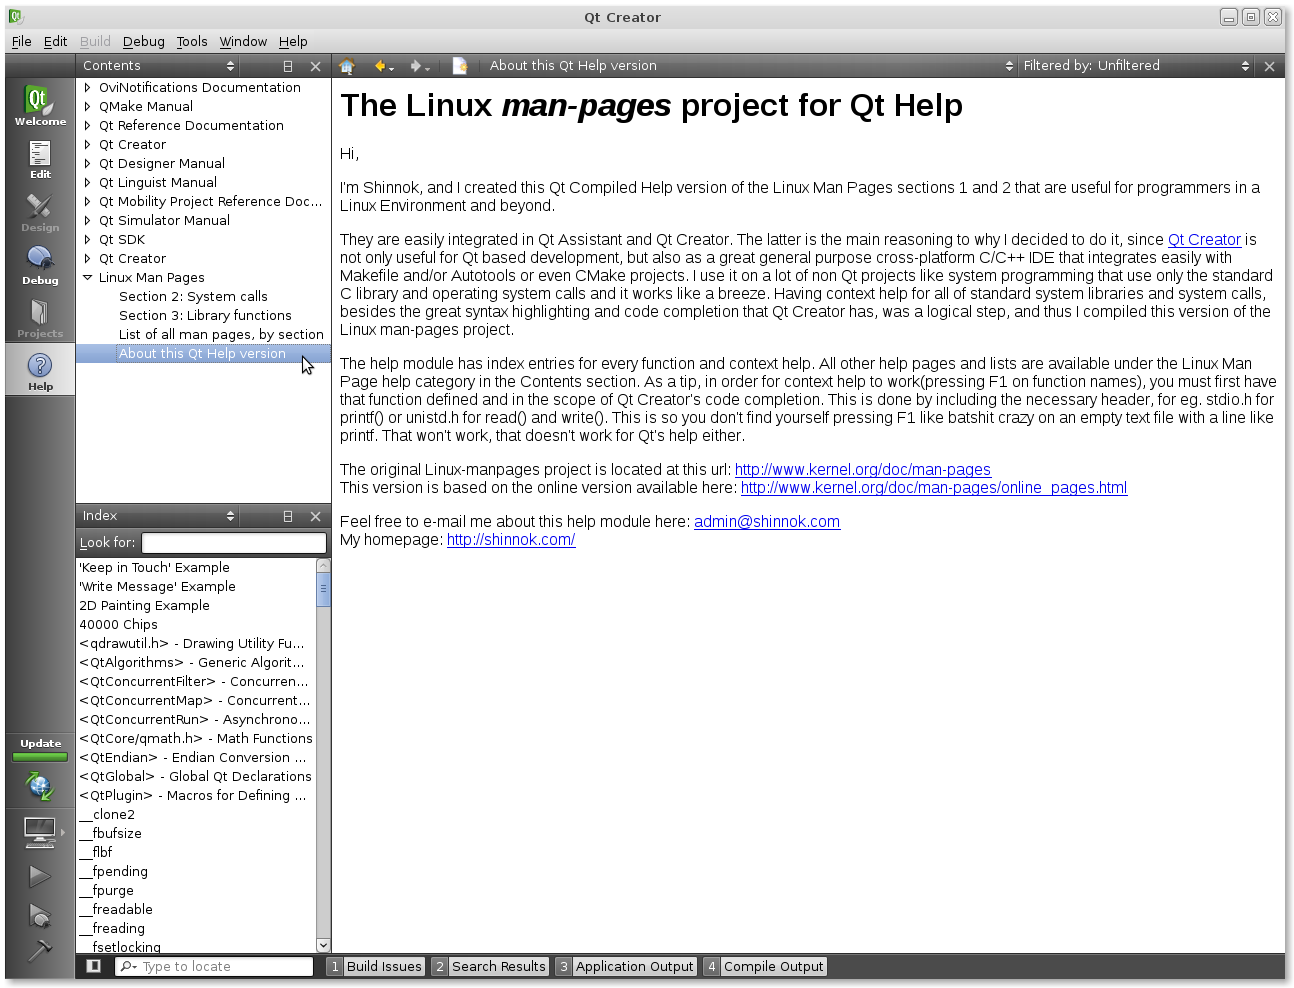 Linux Man Pages integration with Qt Creator